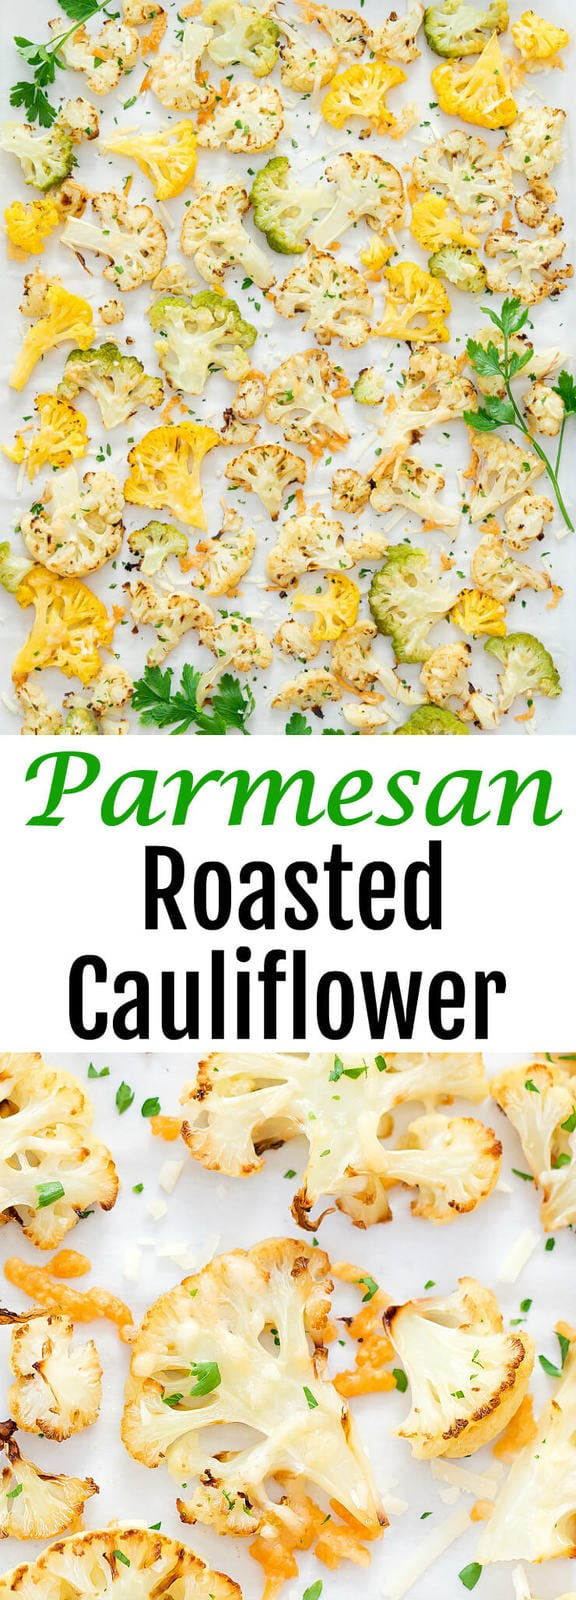 Parmesan Roasted Cauliflower. An easy, simple side dish that is a delicious way to serve cauliflower. #cauliflower #parmesan